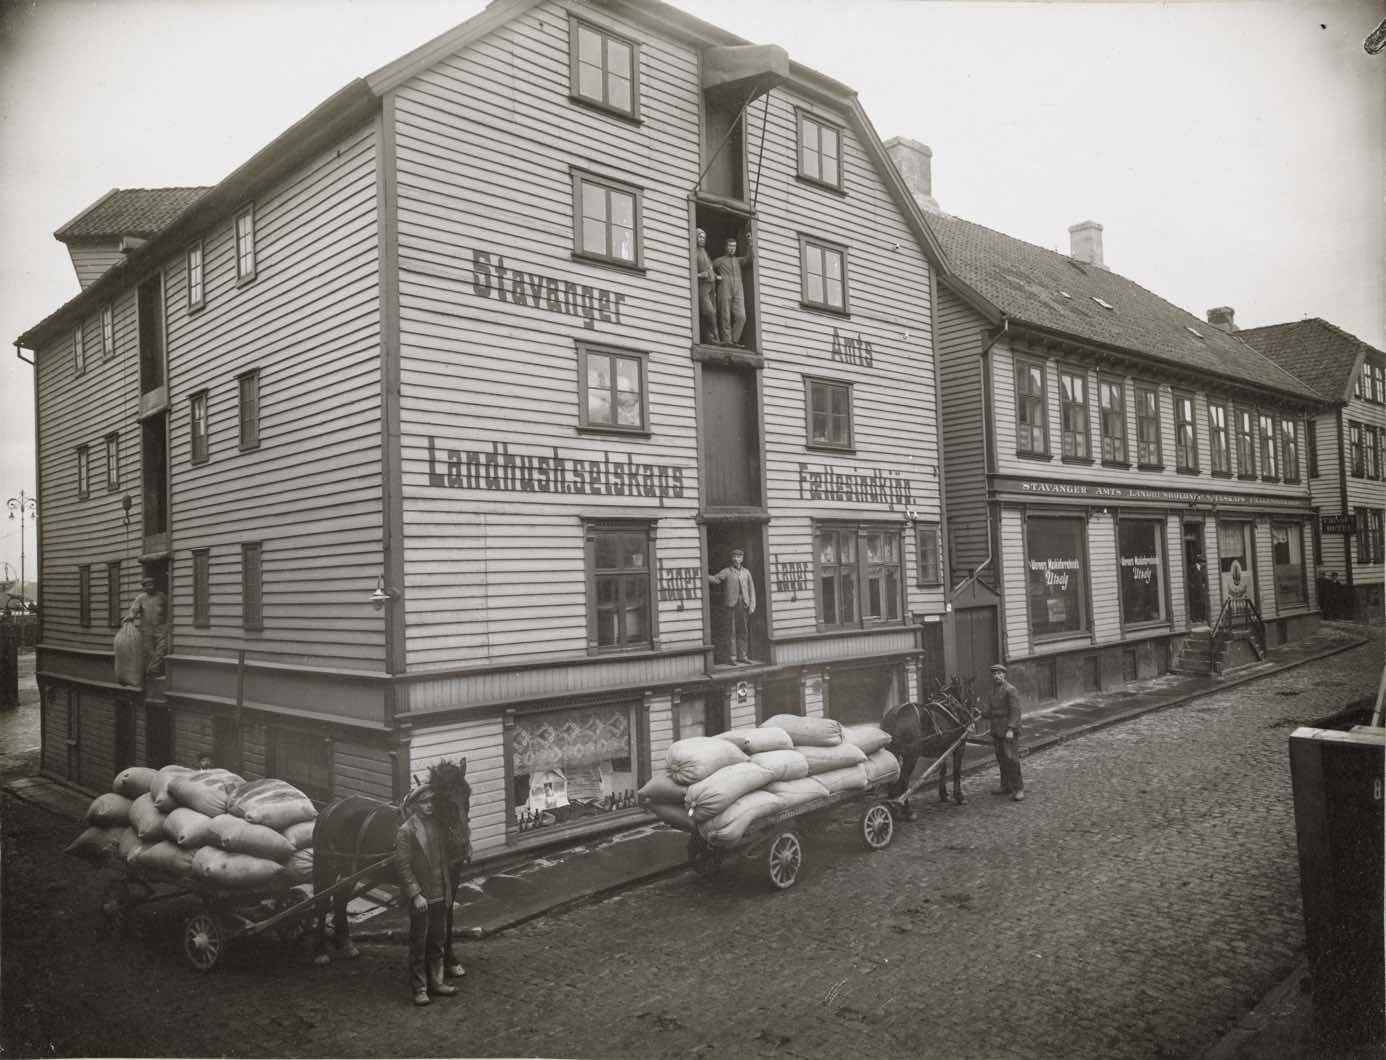 Vintage photography of Nordbogata 8 in Stavanger